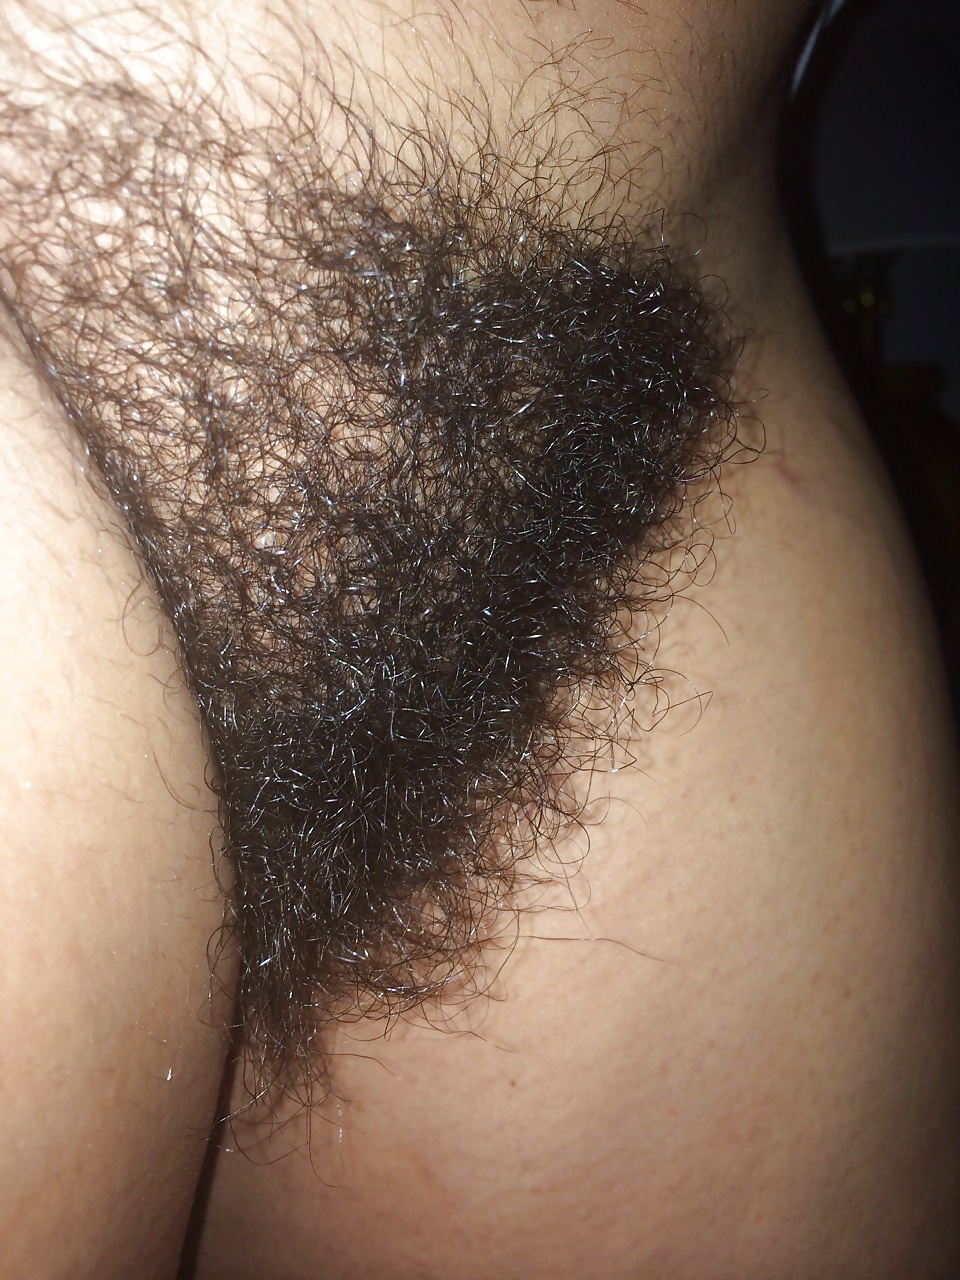 Teens stripping asian pubic hair transplant pictures pornstars porn pics